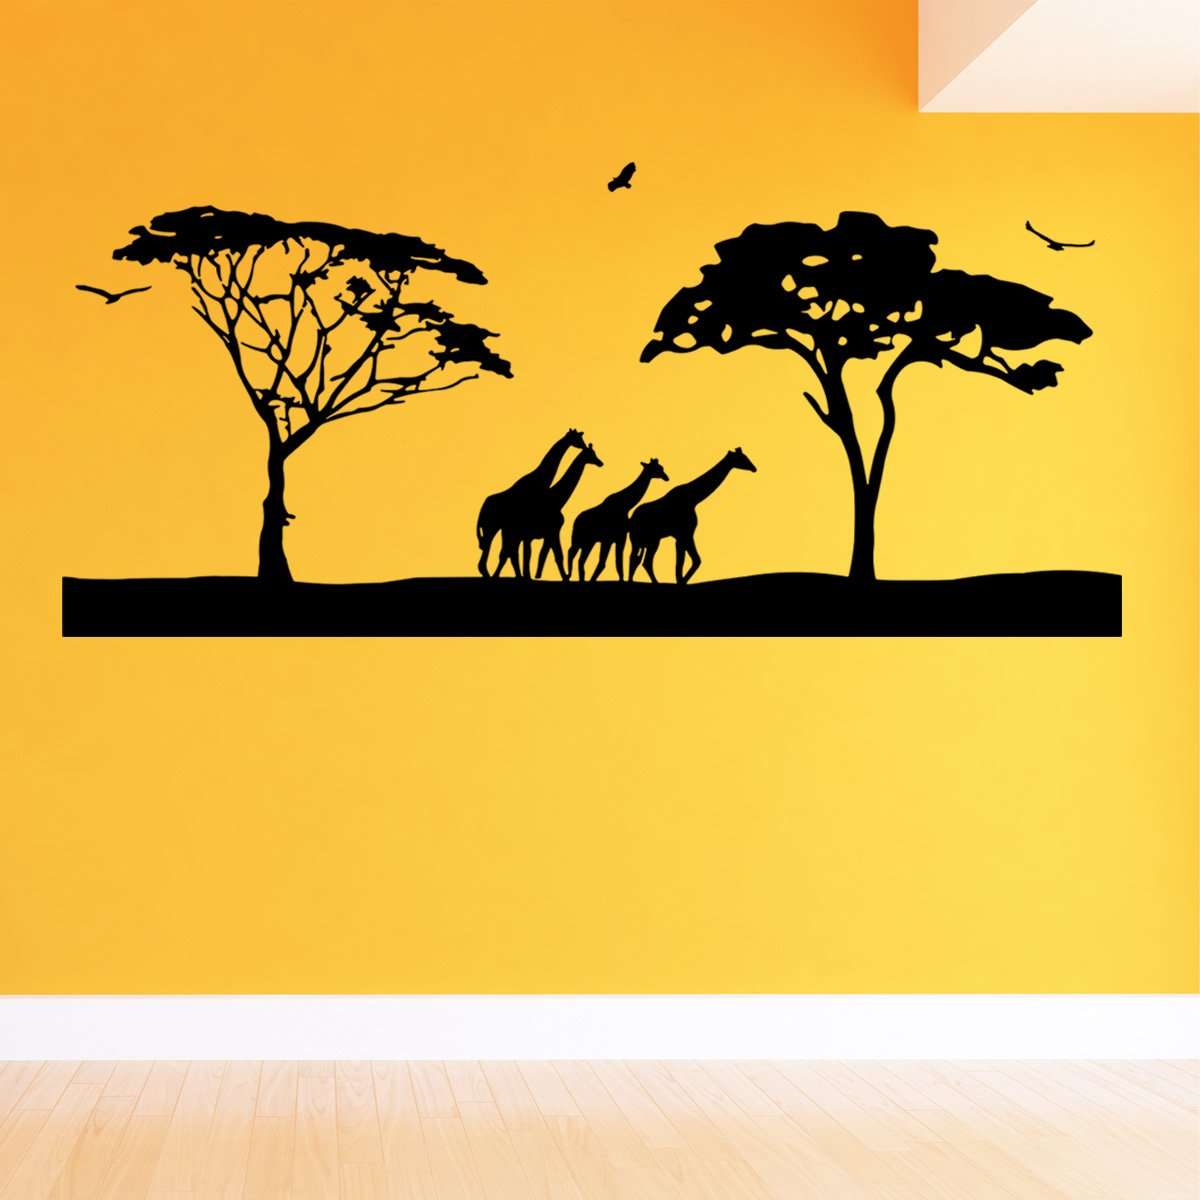 VWAQ Jumbo Safari Vinyl Wall Art Decal